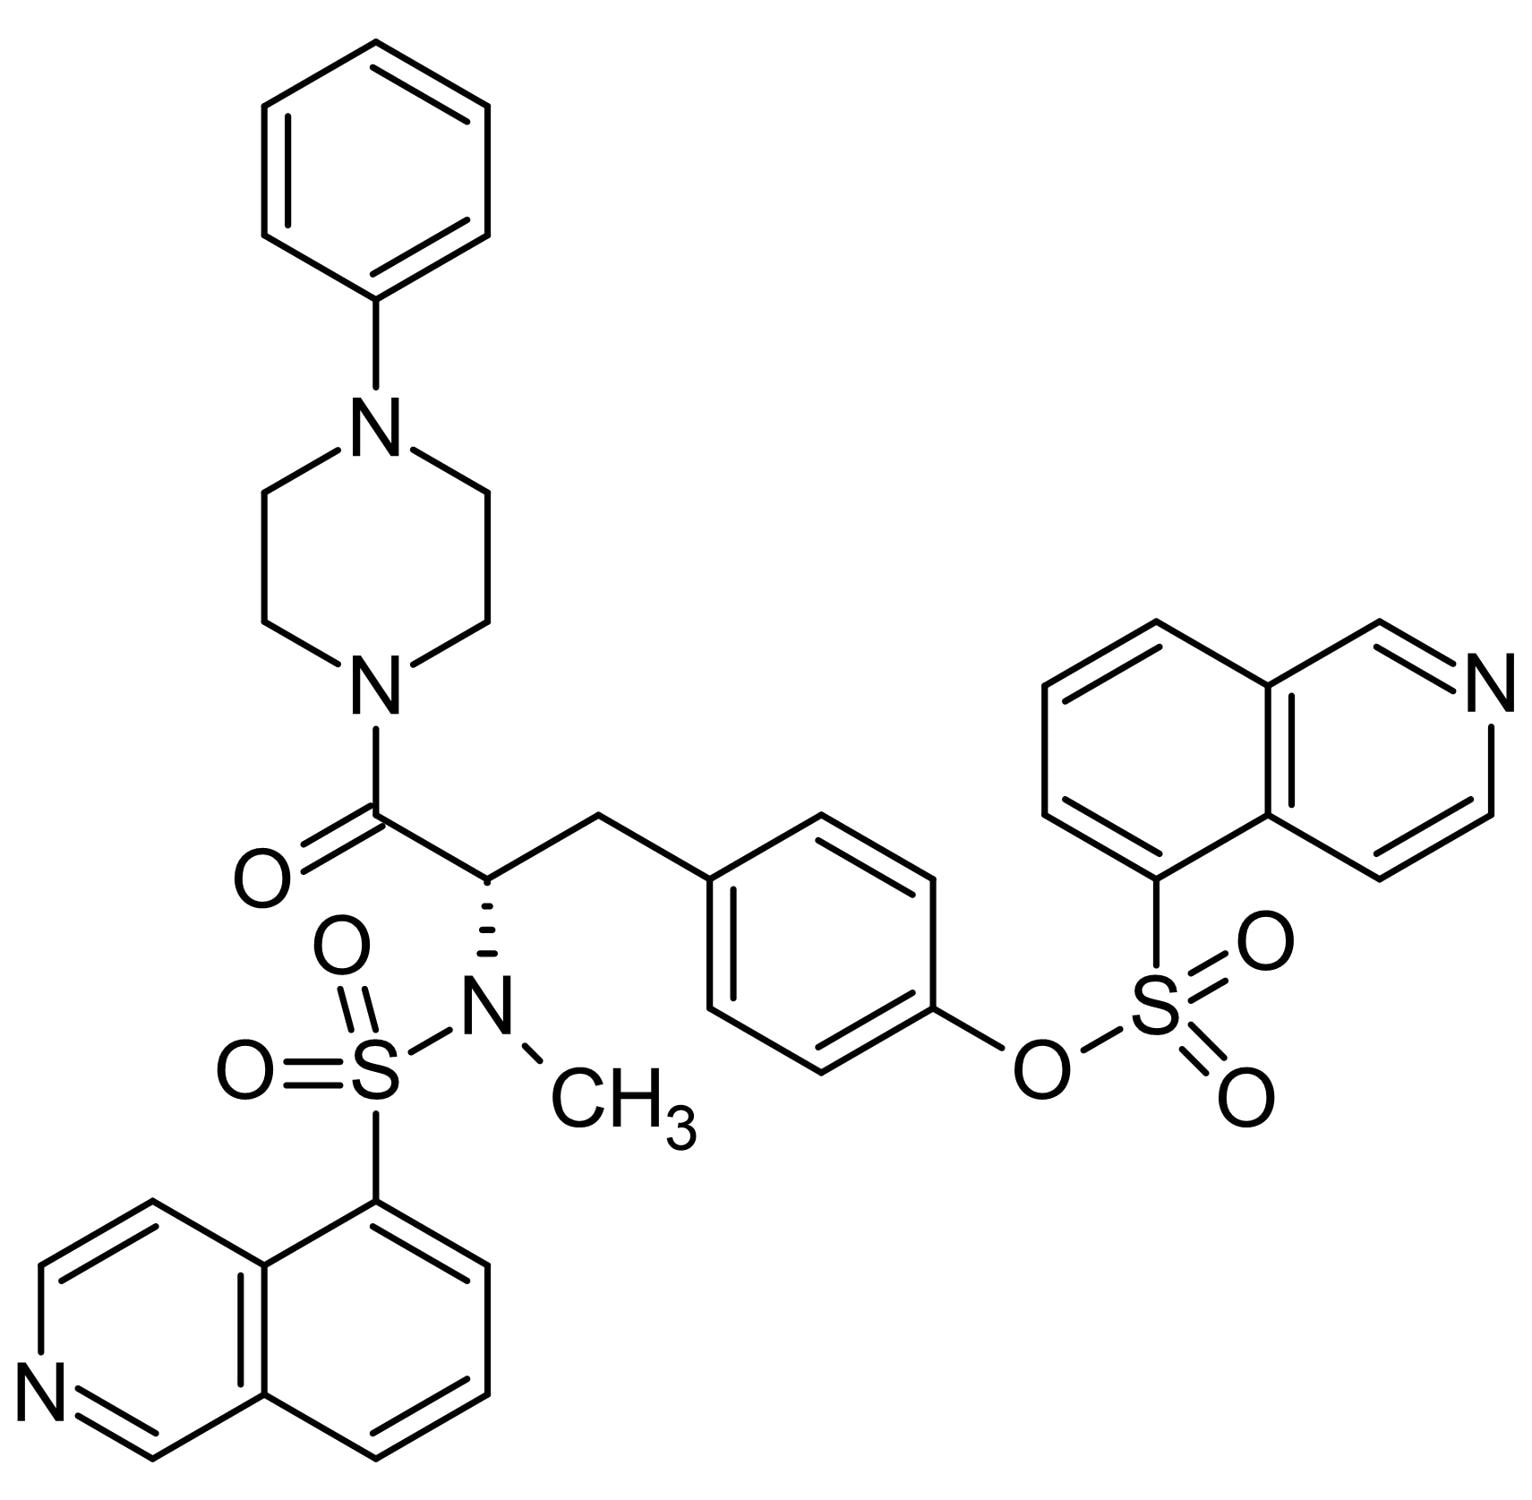 Chemical Structure - KN-62, CaM kinase II inhibitor. P2X<sub>7</sub> antagonist. (ab120421)